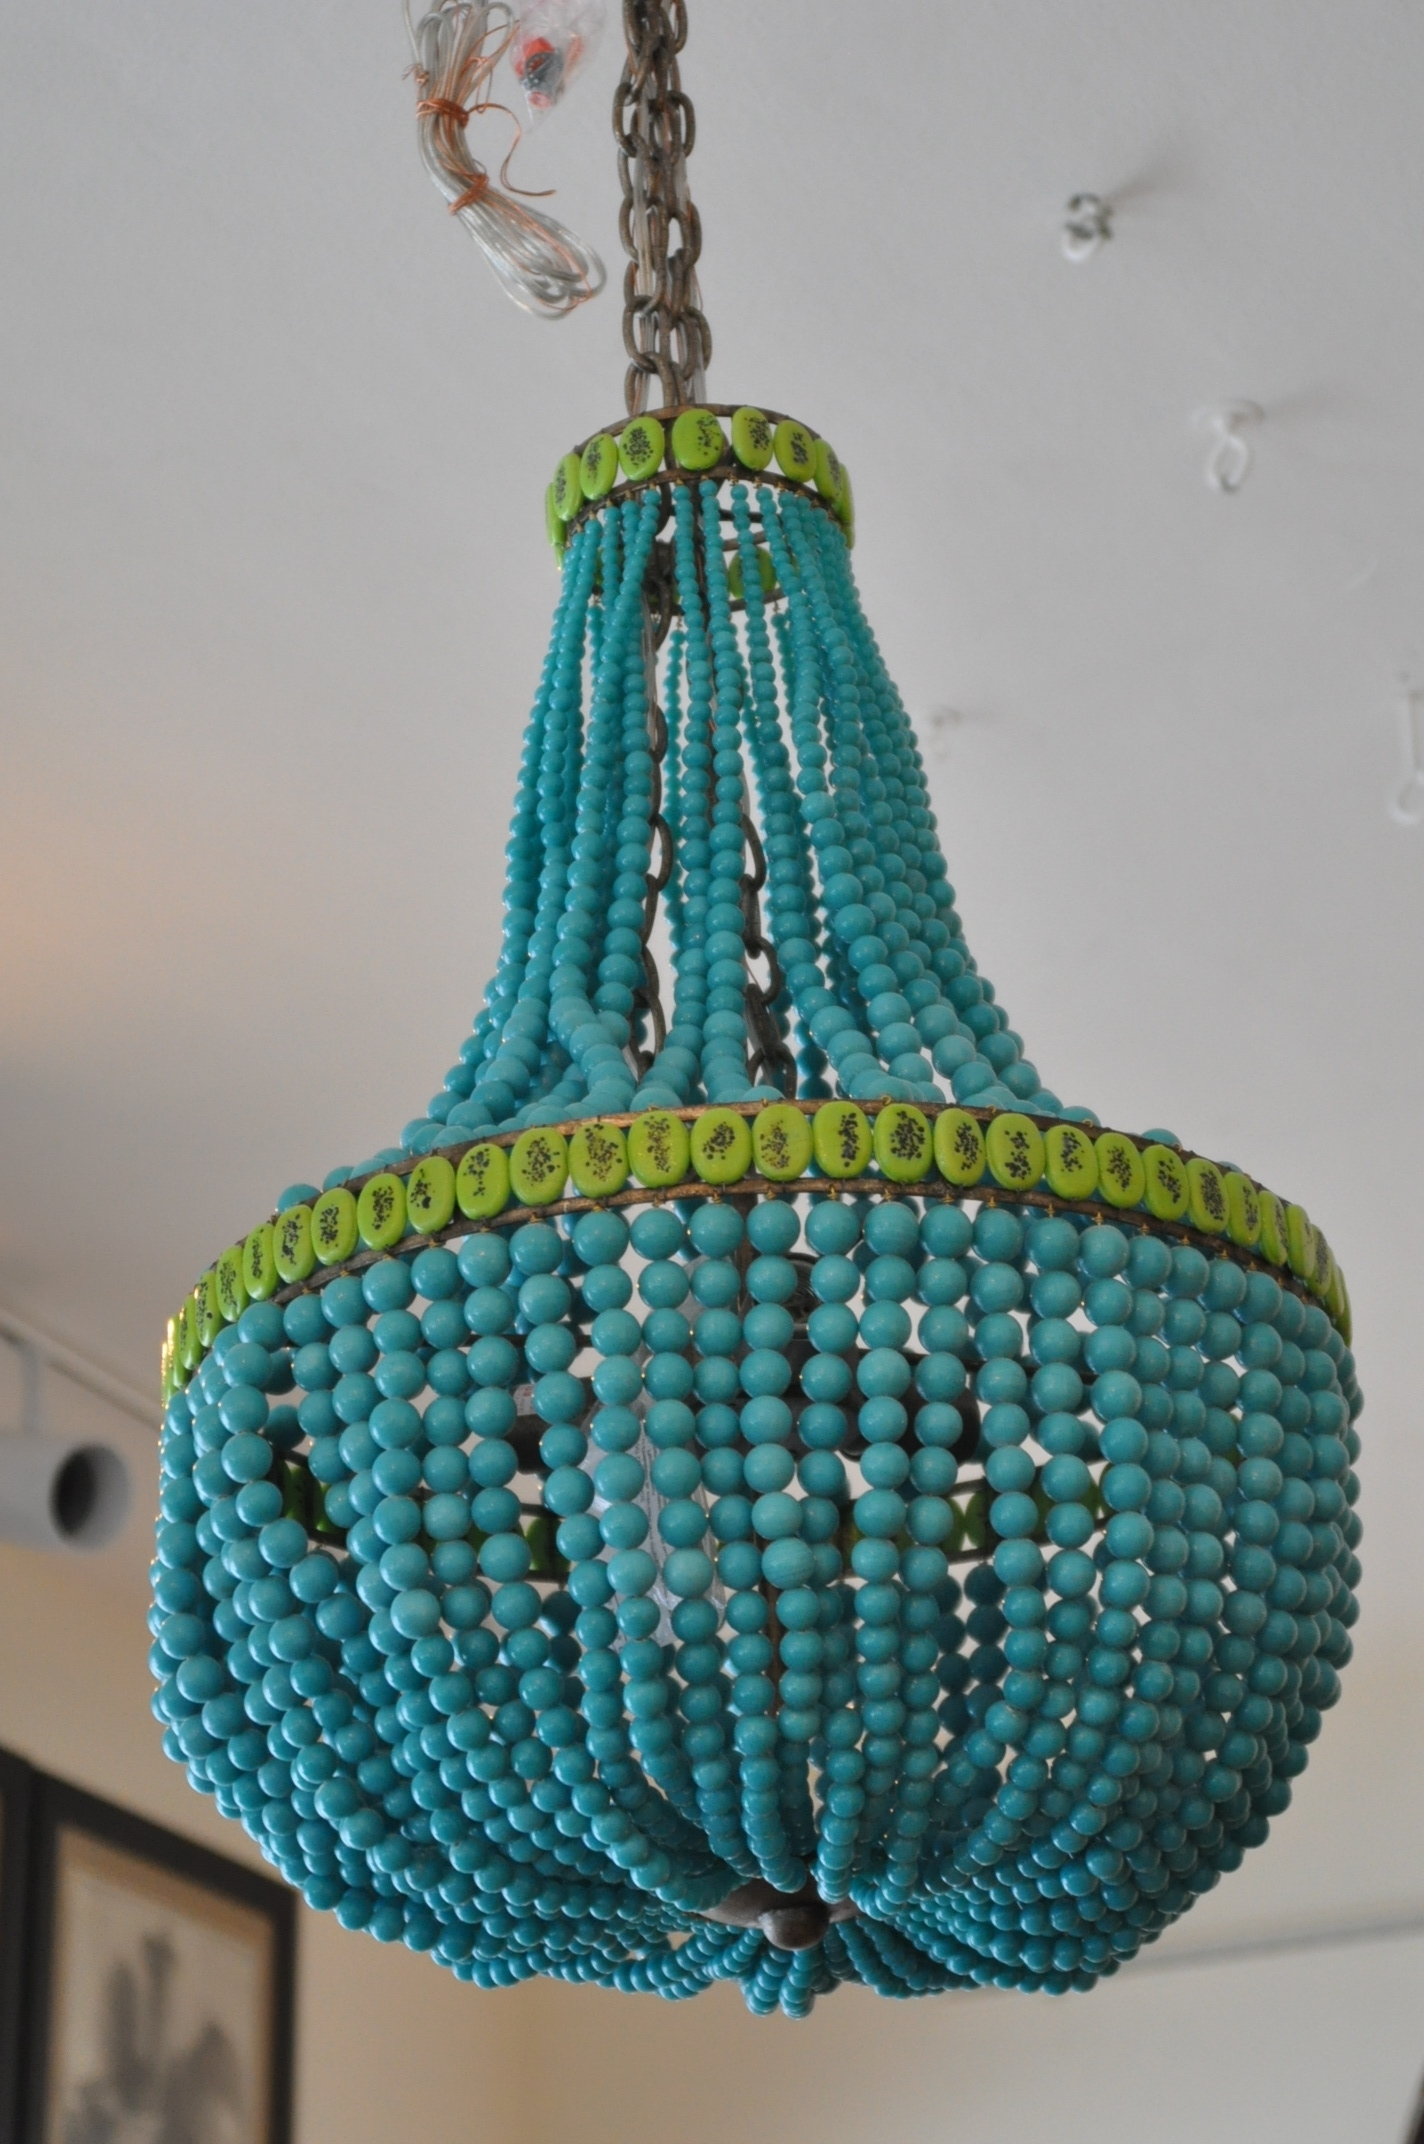 Most Recent Beaded Empire Style Chandelier – Mecox Gardens With Regard To Turquoise Empire Chandeliers (View 4 of 15)